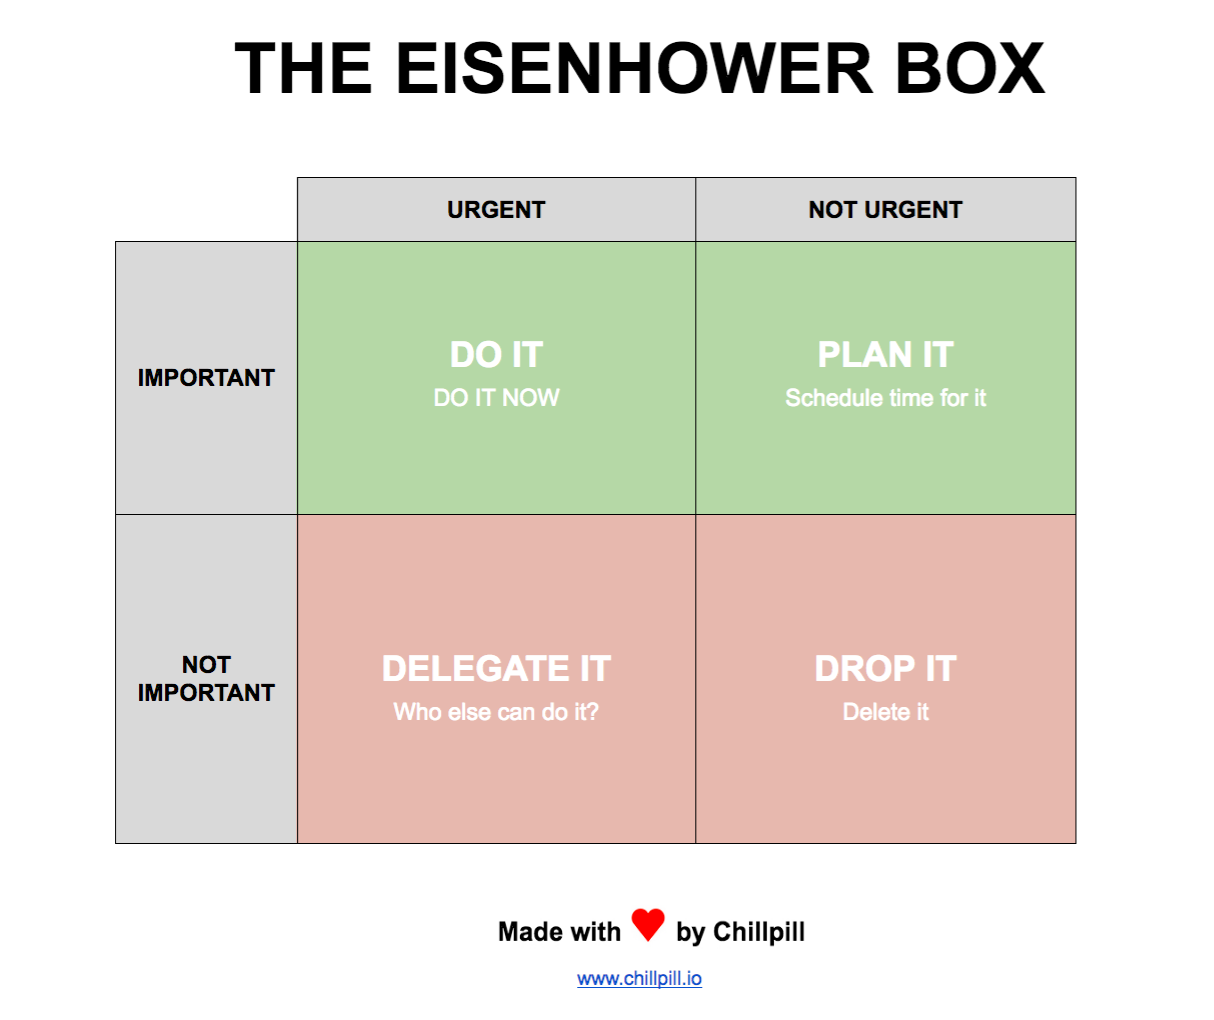 eisenhower box multitasking